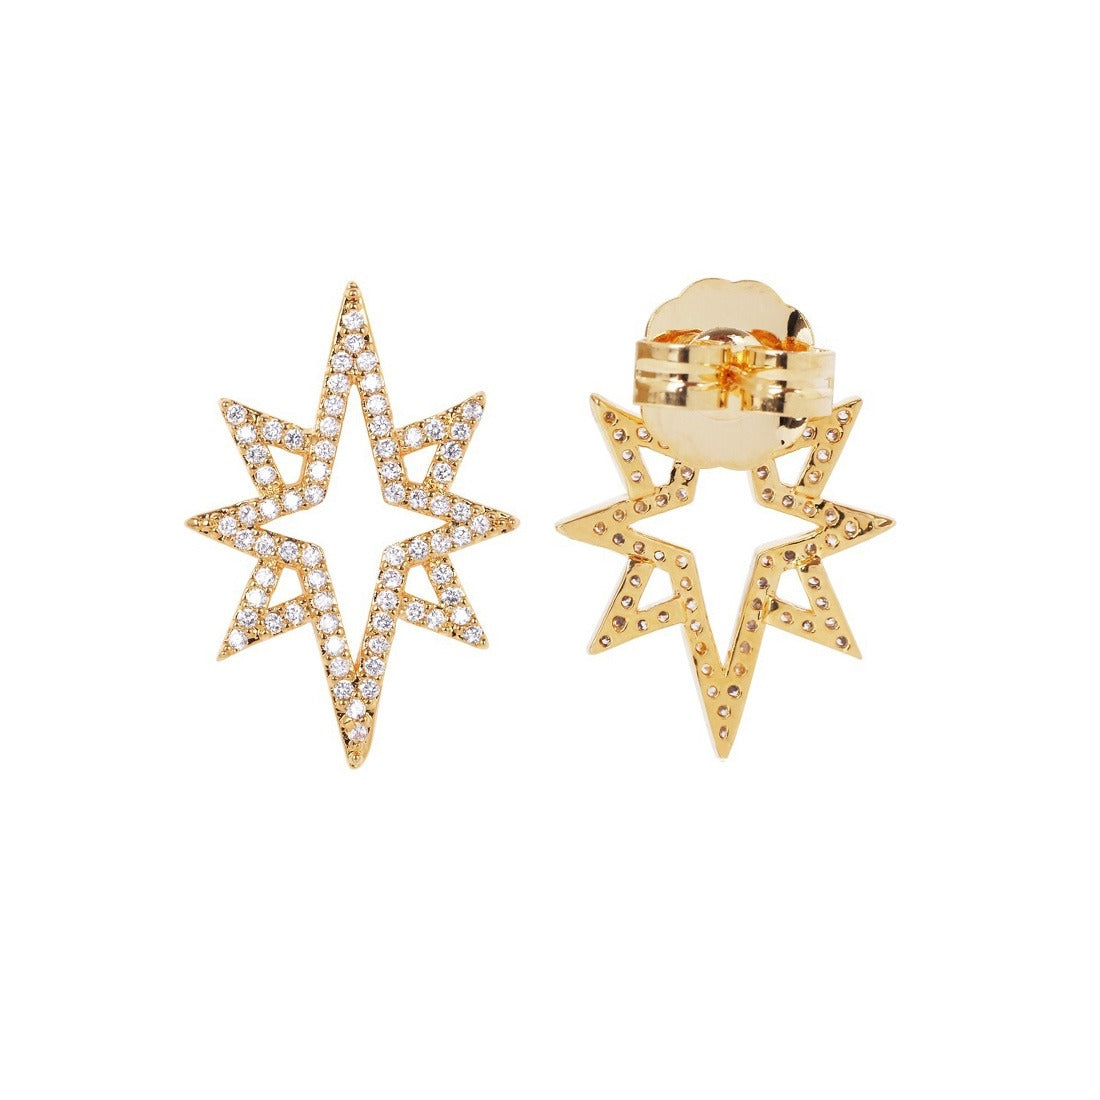 STARBURST EARRINGS - GOLD